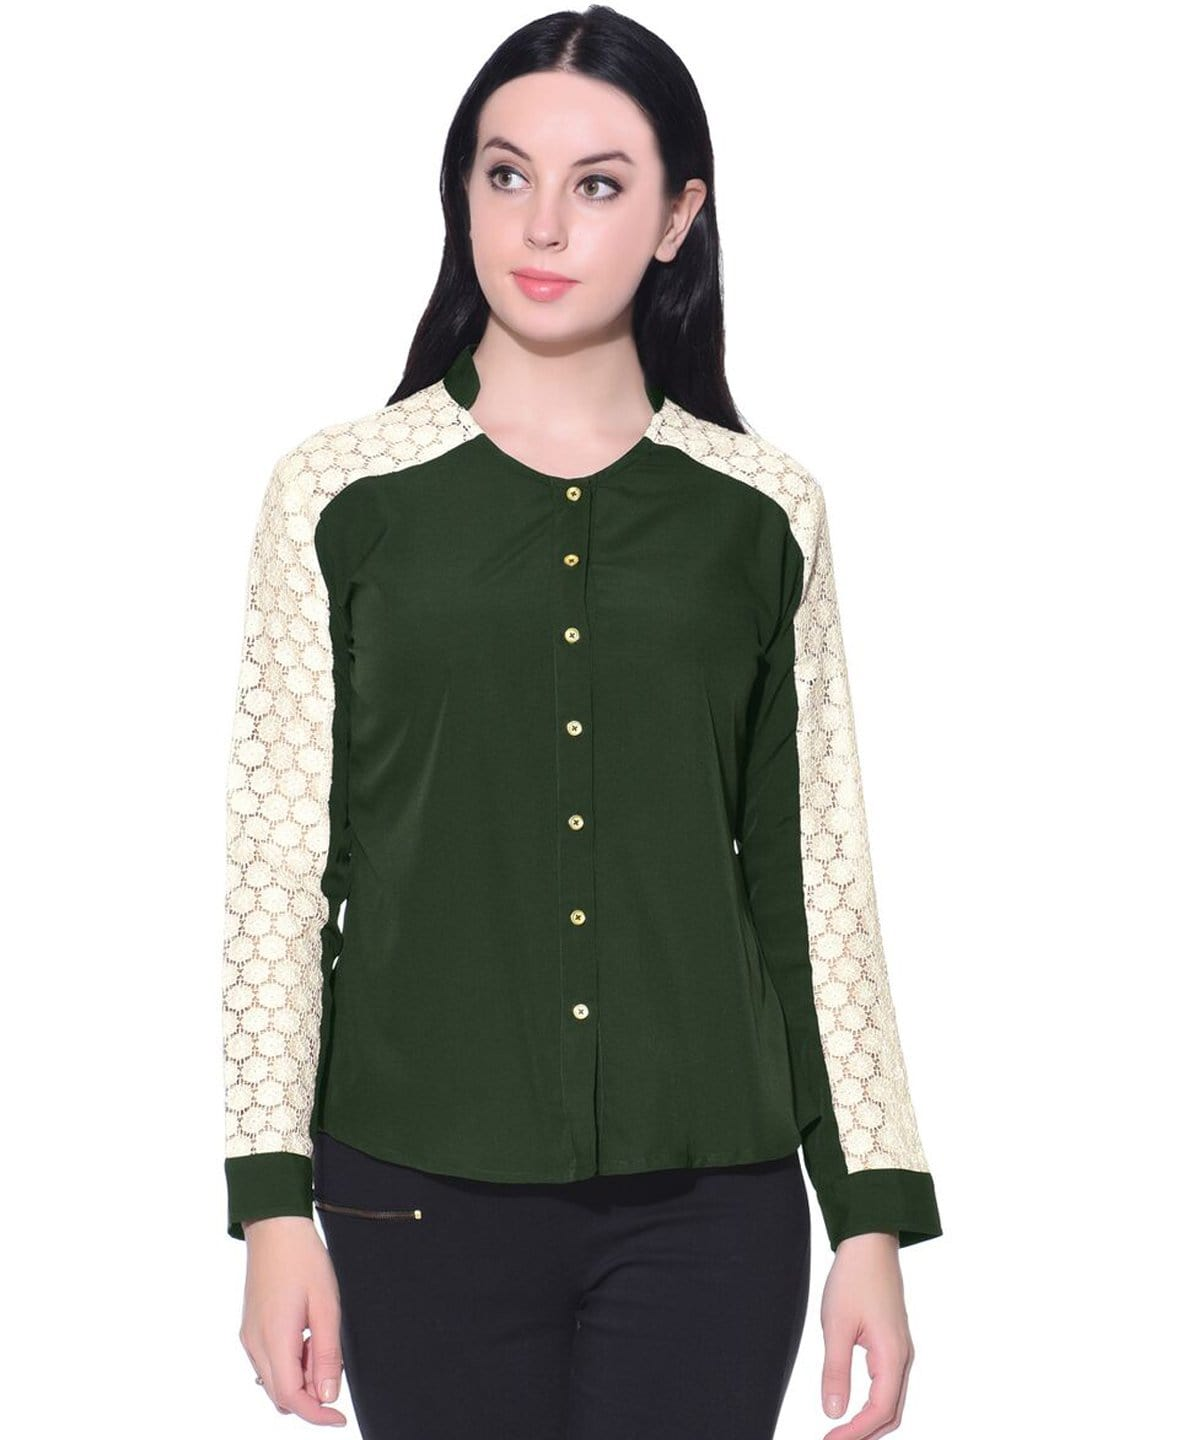 Solid Green Crepe Lace Button Down Shirt - Uptownie